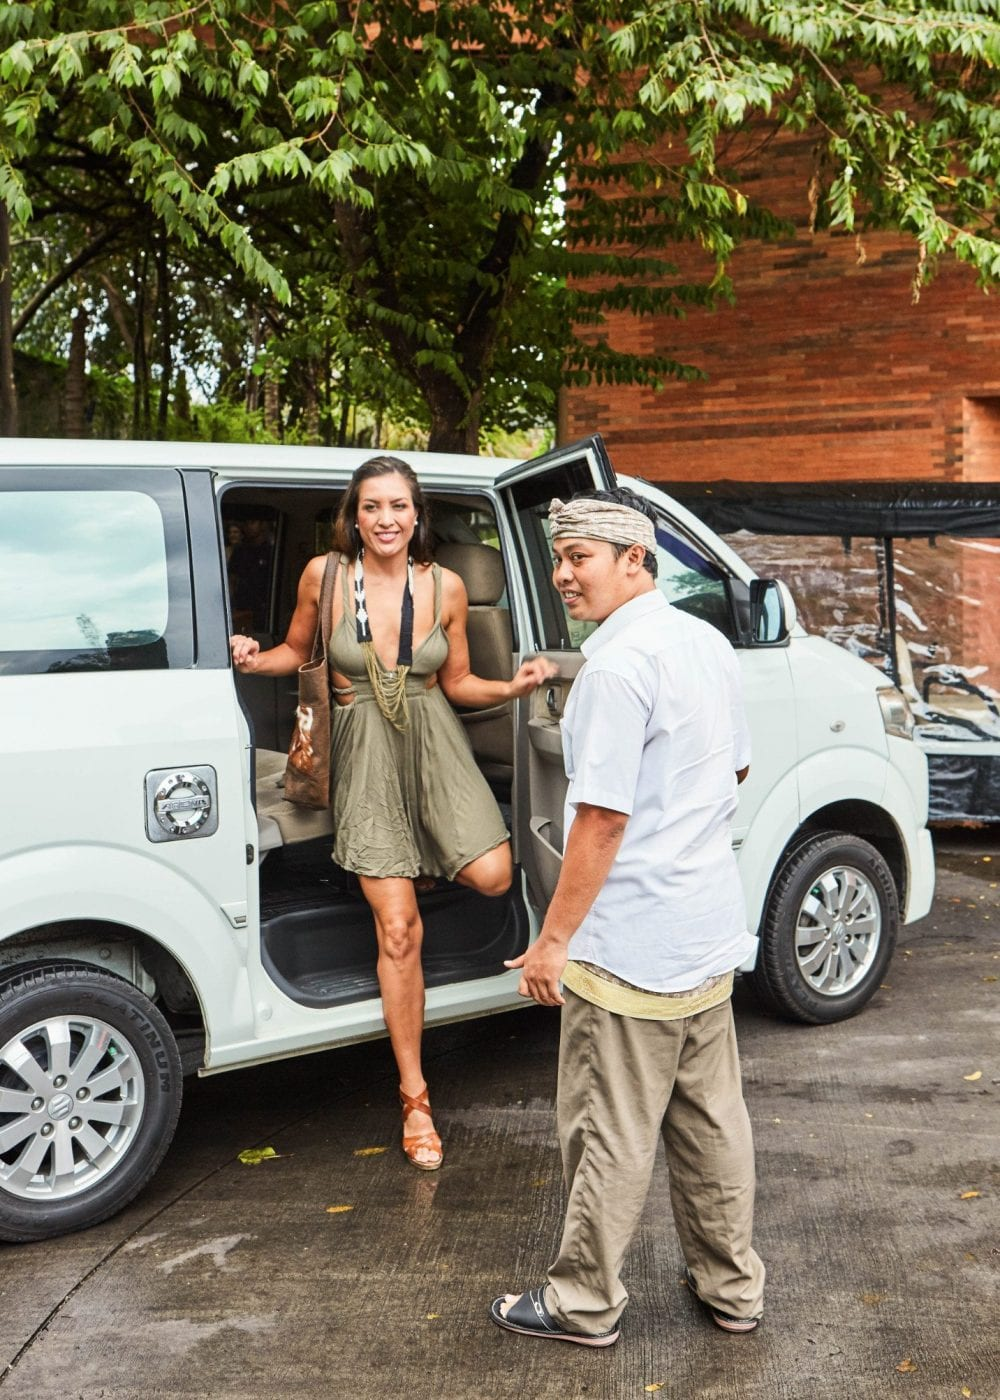 Indulge your sightseeing bliss with our personal driver to take you around and show you the highlights of Bali.